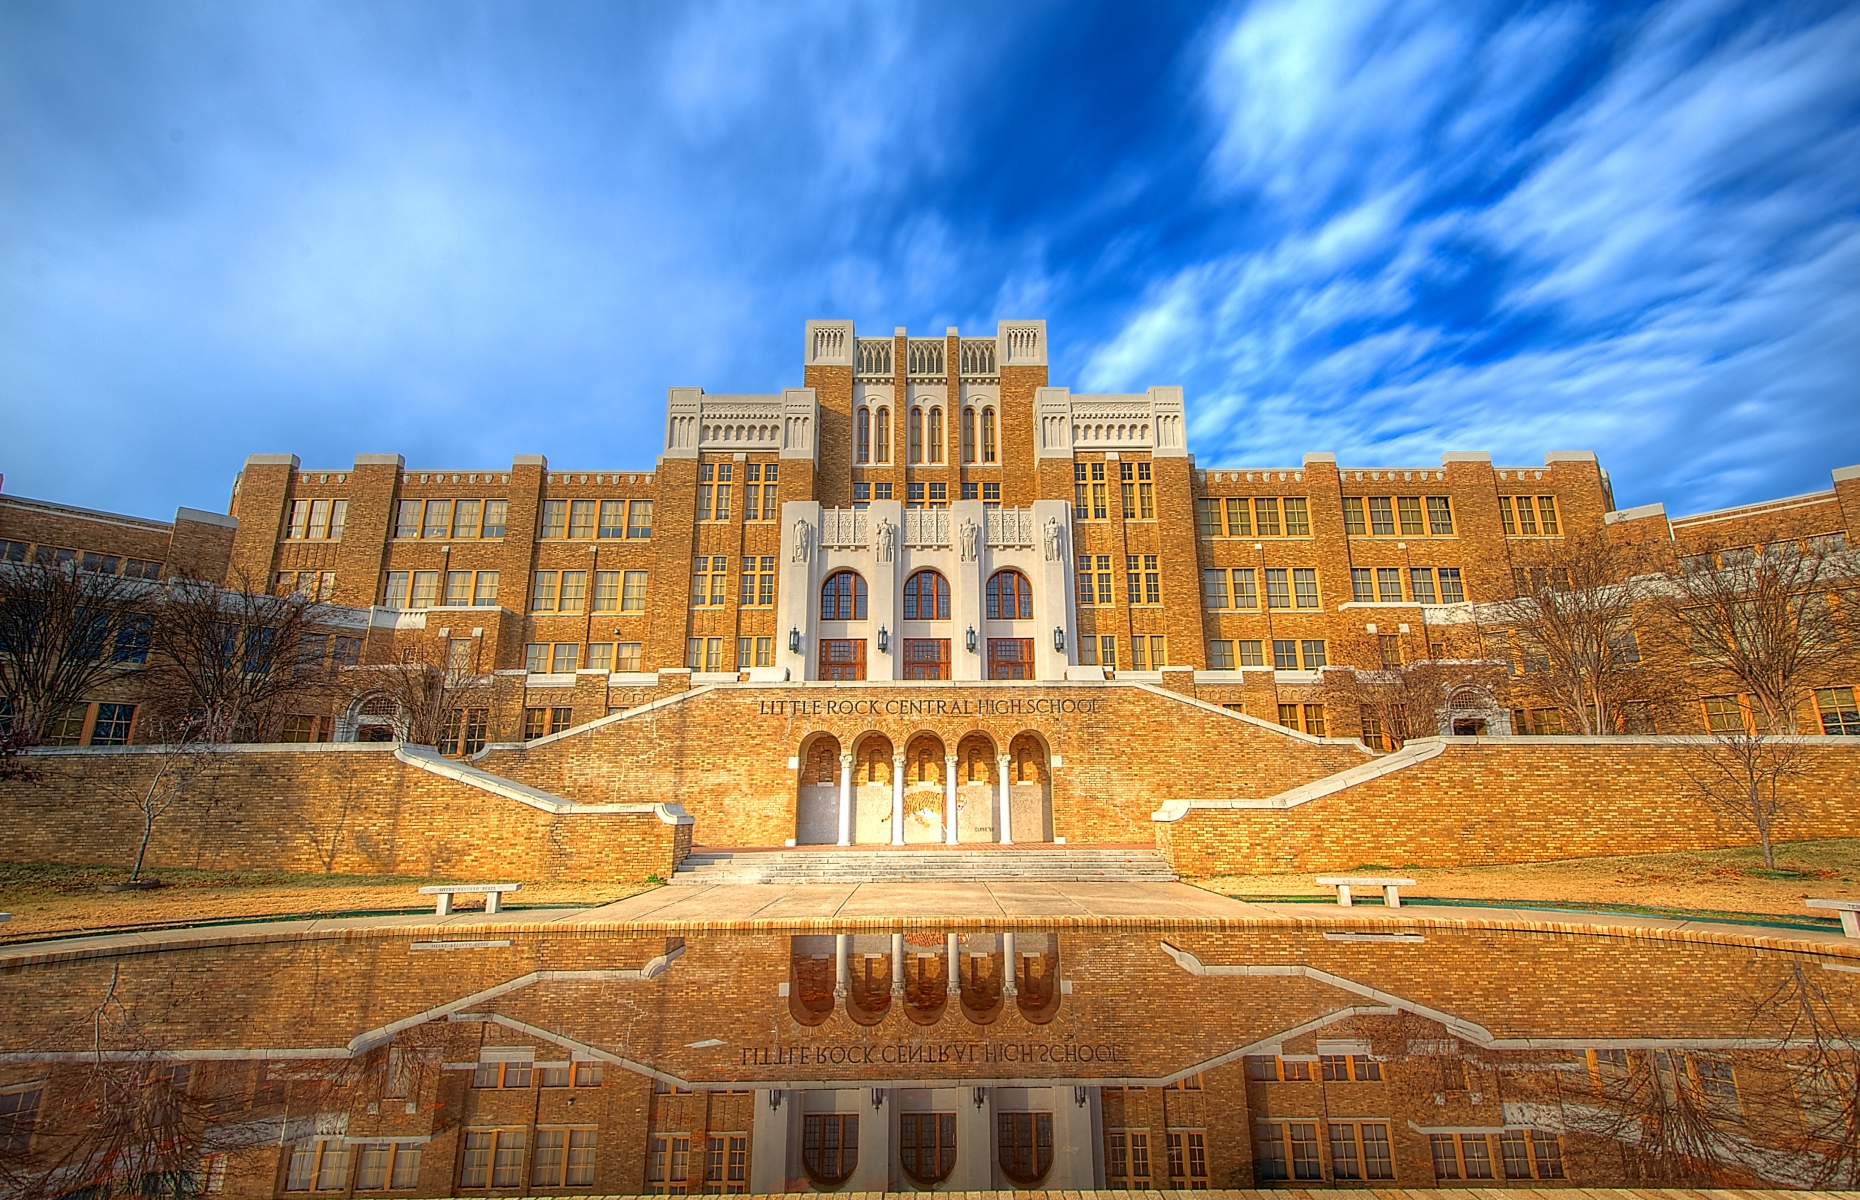 """Slide 5 of 51: Take a guided one-hour tour of this high school that once stood at the center of the U.S. civil rights movement and desegregation. The """"Little Rock Nine"""" were African-American students bussed into the all-white high school, escorted by federal troops, attending classes despite the furor of hatred, ridicule and intimidation directed at them."""